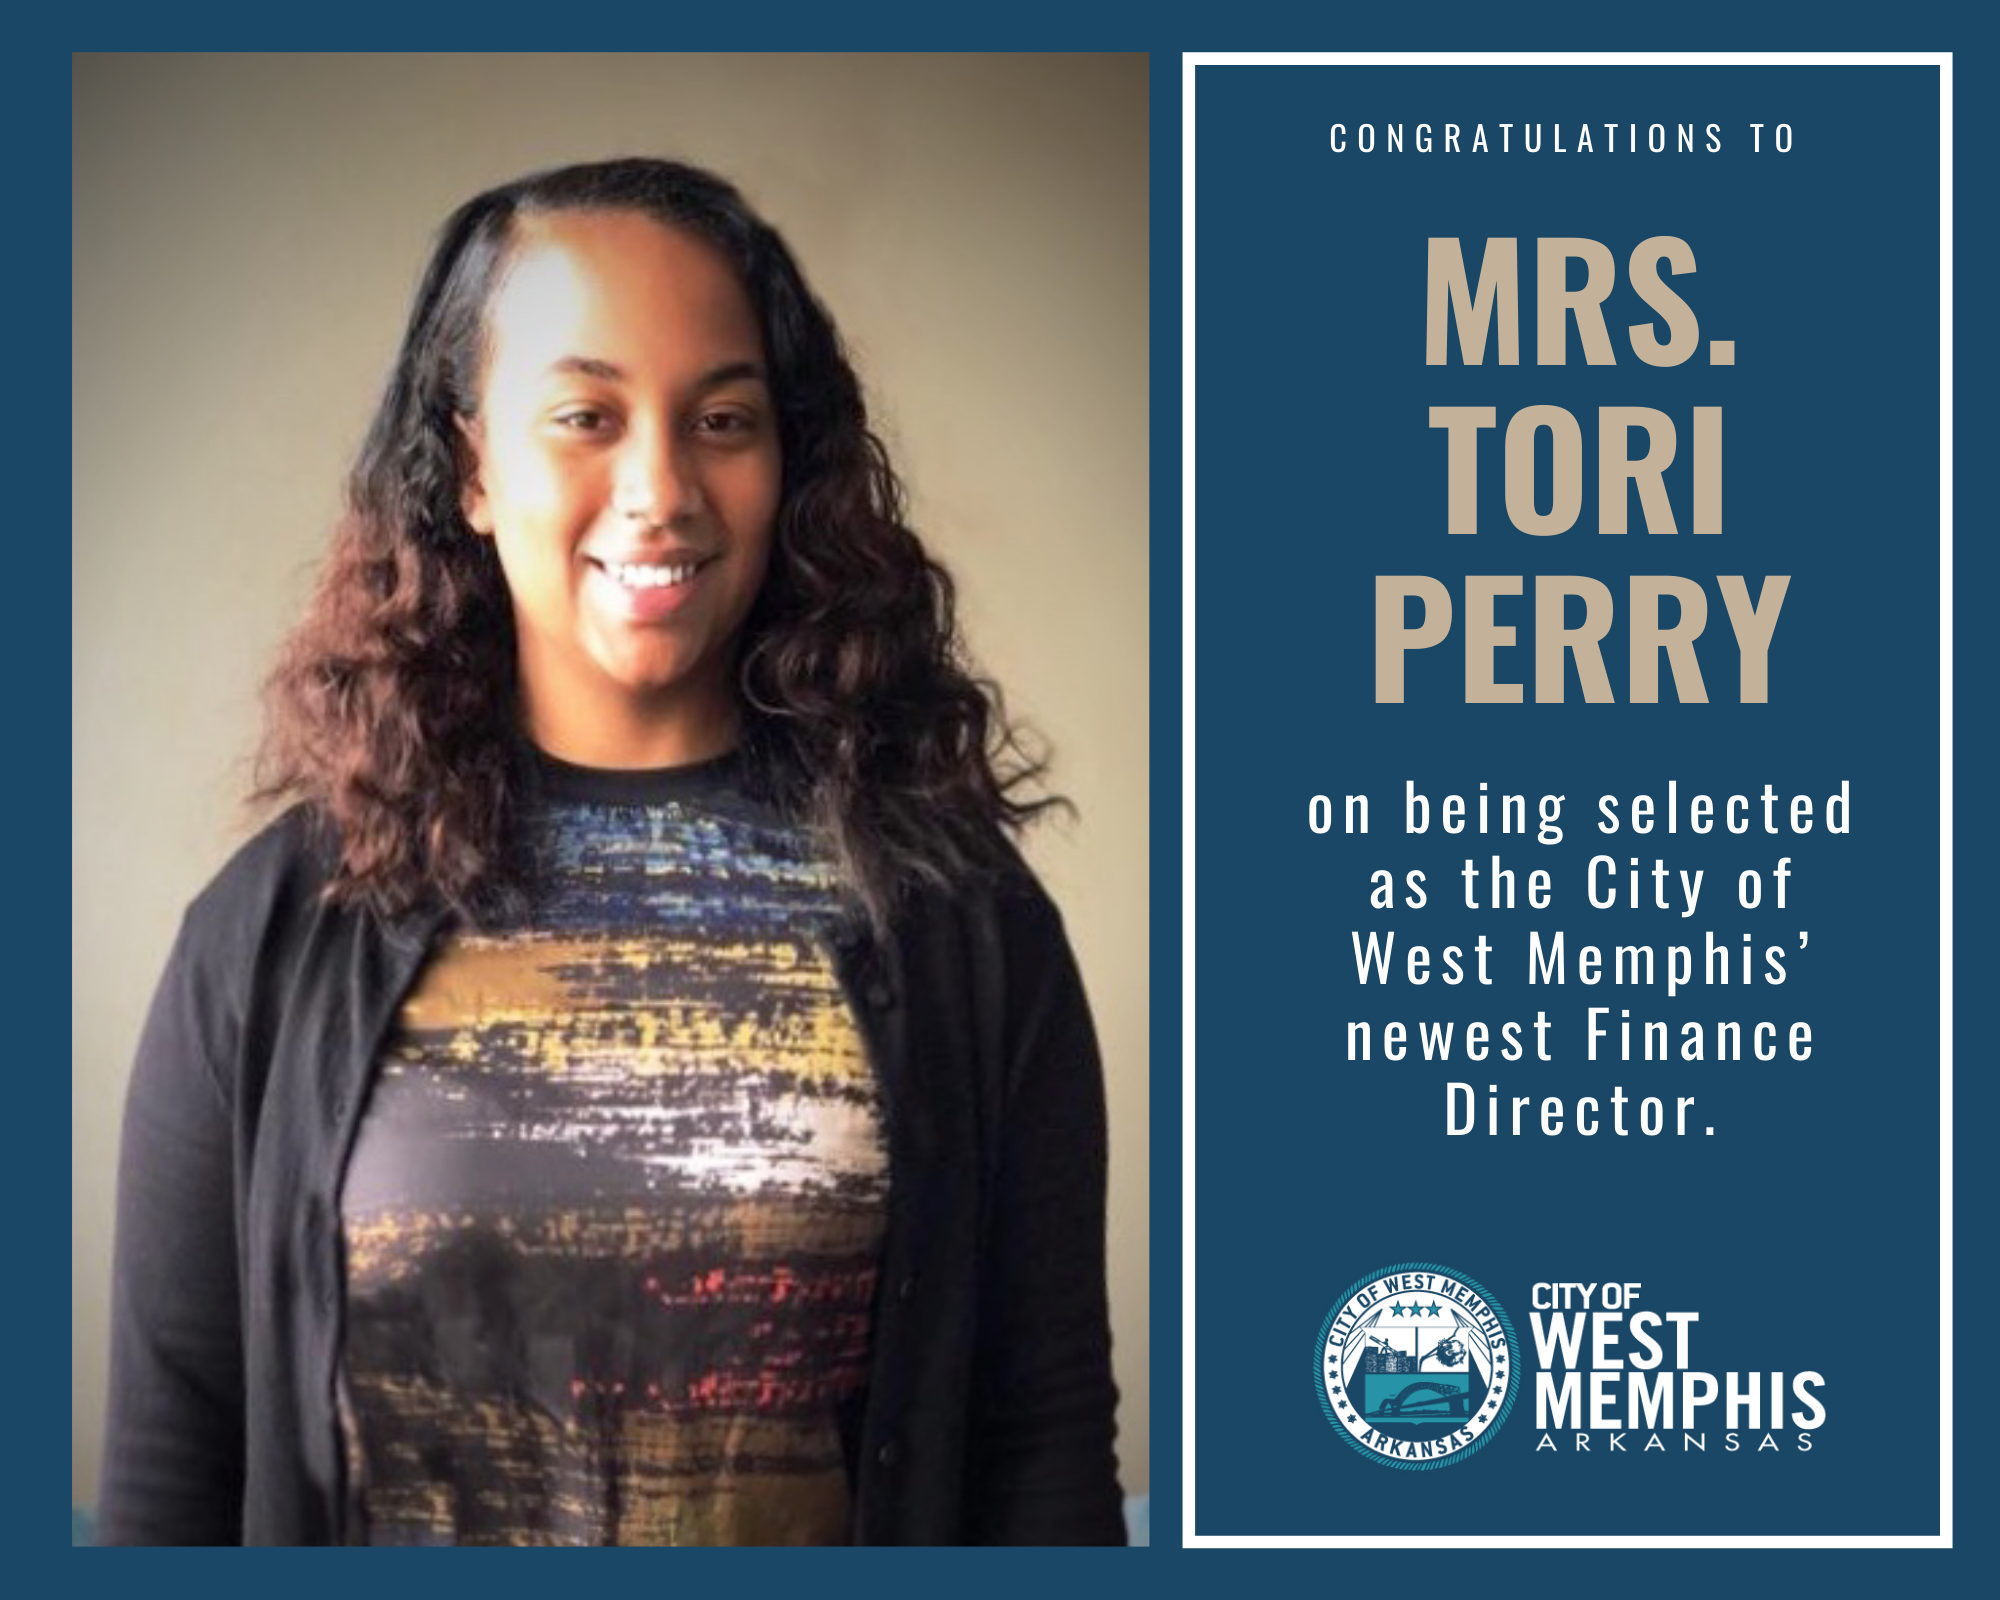 City of West Memphis Finance Director - Tori Perry